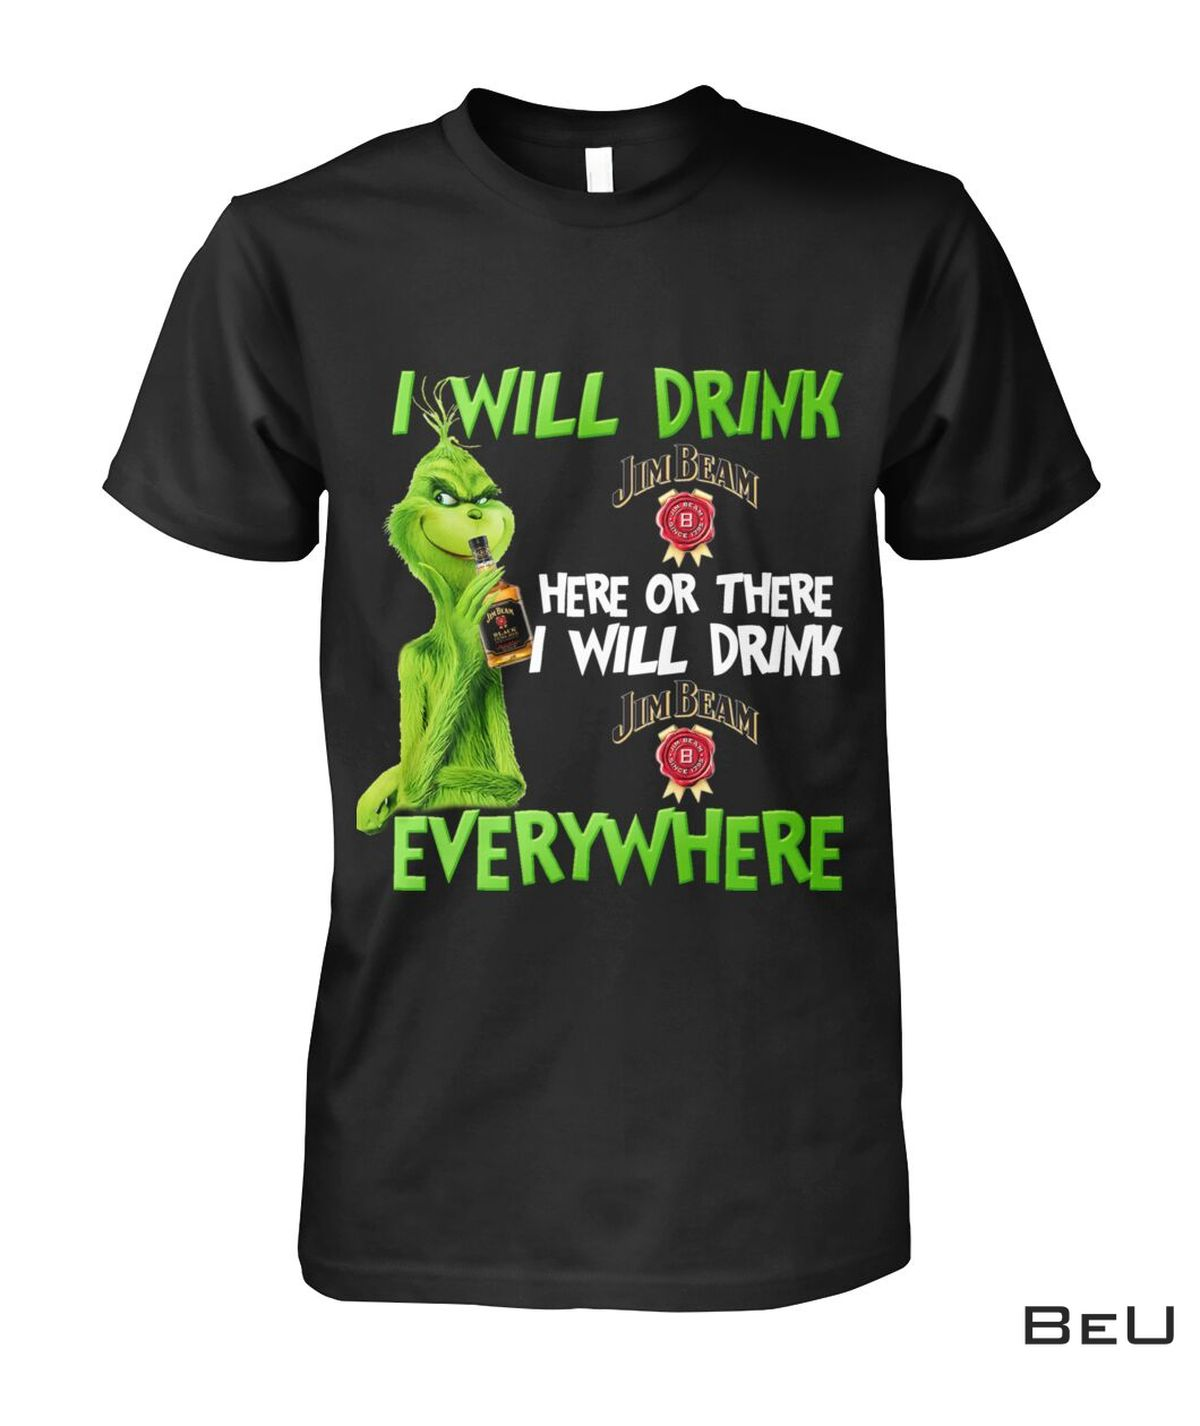 The Grinch I Will Drink Jim Beam Here Or There I Will Drink Jim Beam Everywhere Shirt, hoodie, tank top